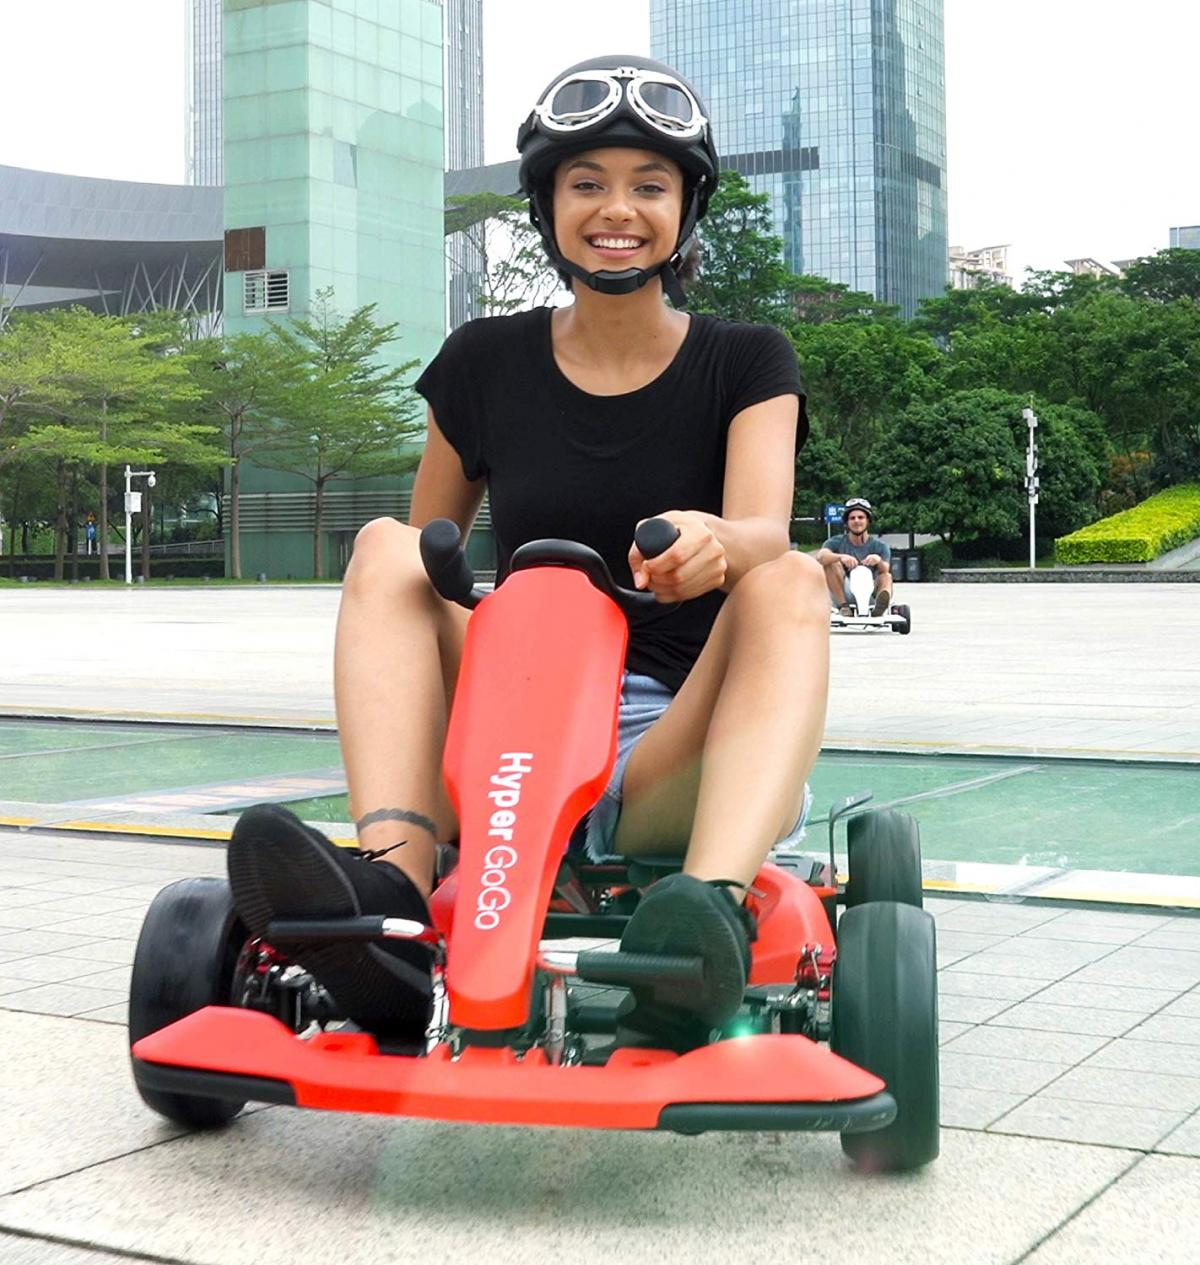 HYPER GOGO GoKart Kit - Turns your existing hoverboard into a GoKart